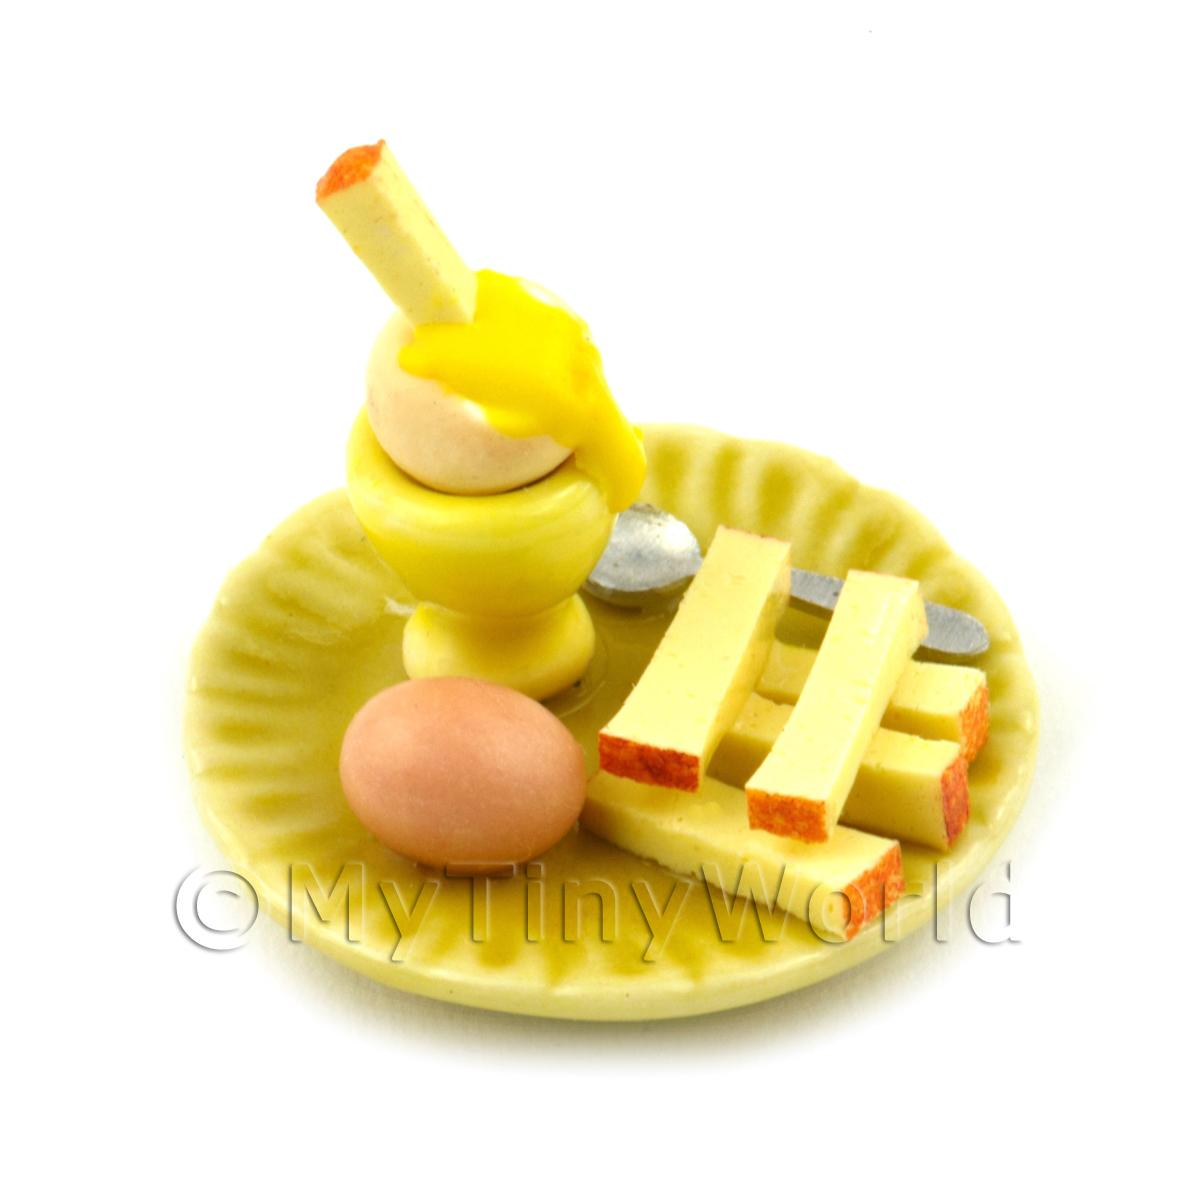 Dolls House Miniature Boiled Egg Being Dipped On A Yellow Plate